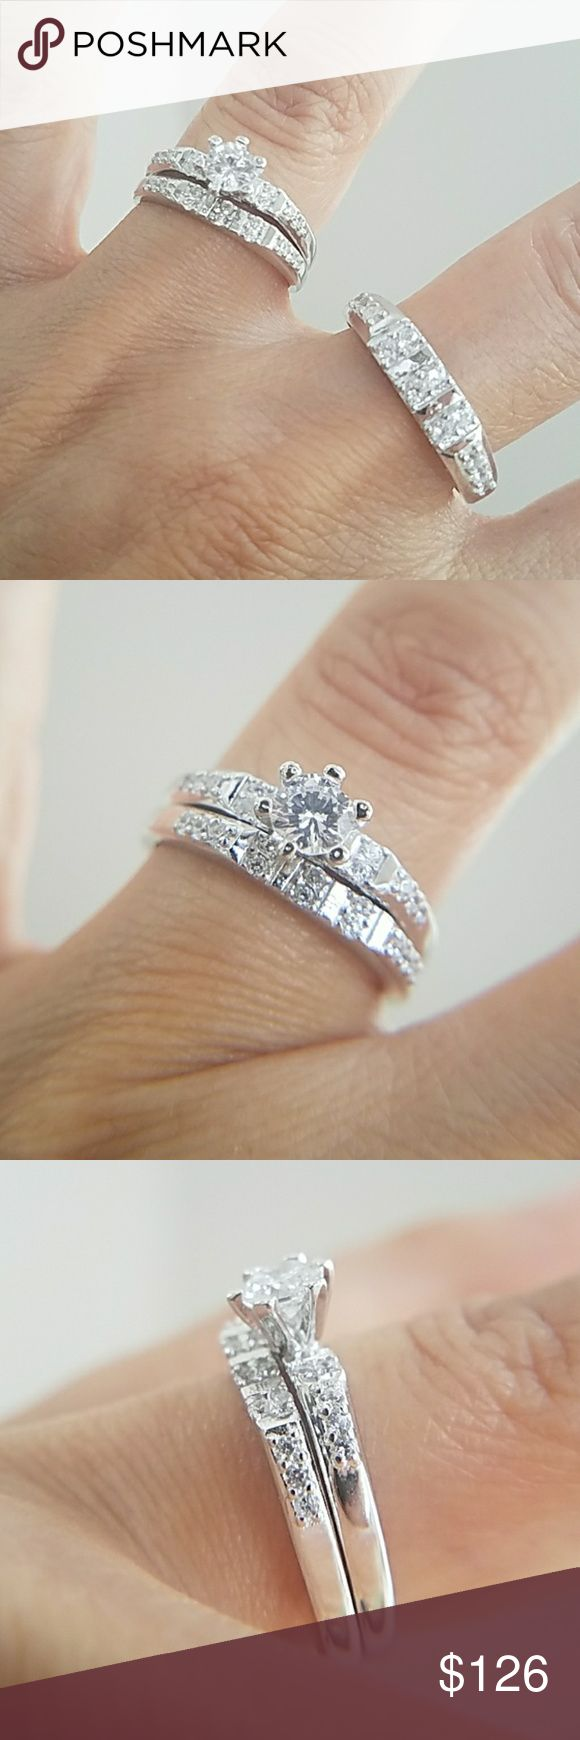 3pc set Engagement ring & wedding Bands men women 3pc set. Women's Engagement Ring with Wedding Band for Bride and Groom. 3pc set. 1/2 karat cubic zirconia center stone in a 14k White Gold plated over Sterling silver setting.  Available in all sizes.  Please message me your ring size your Ring sizes.  Thanks Jewelry Rings